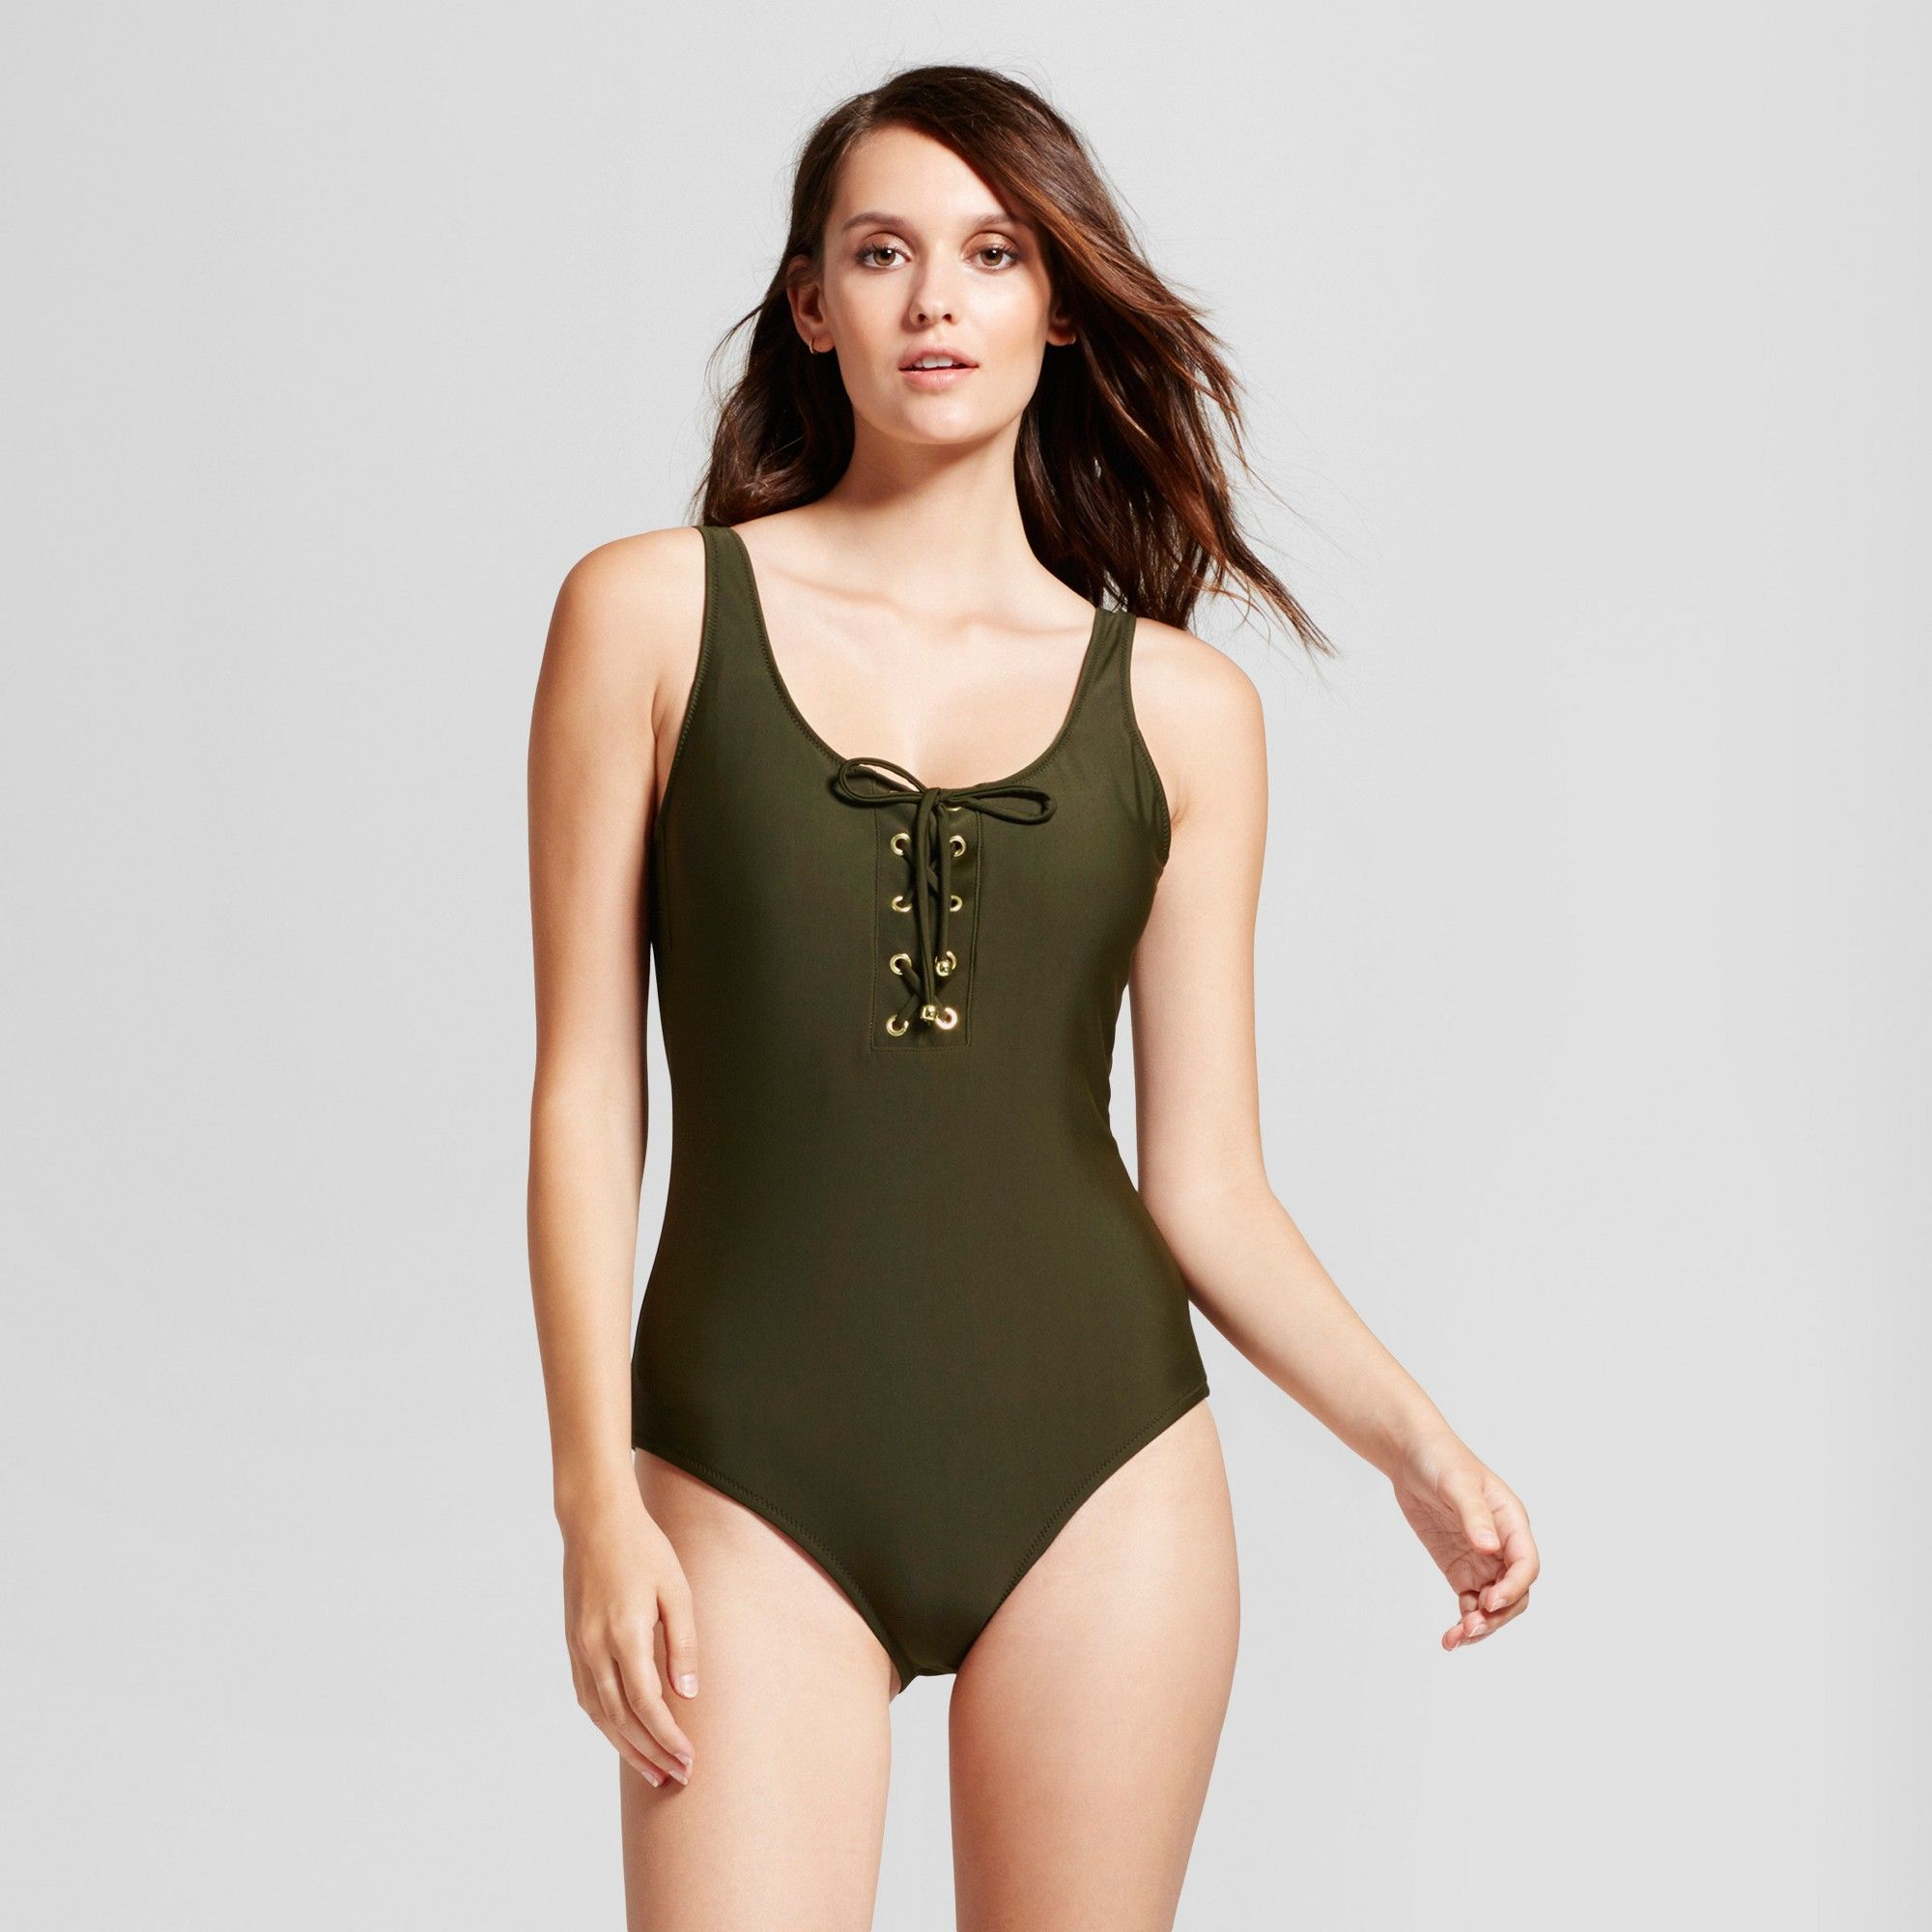 7eb5bd47c4 Women's Lace Up One Piece - Green Earth - S - Mossimo | Products ...